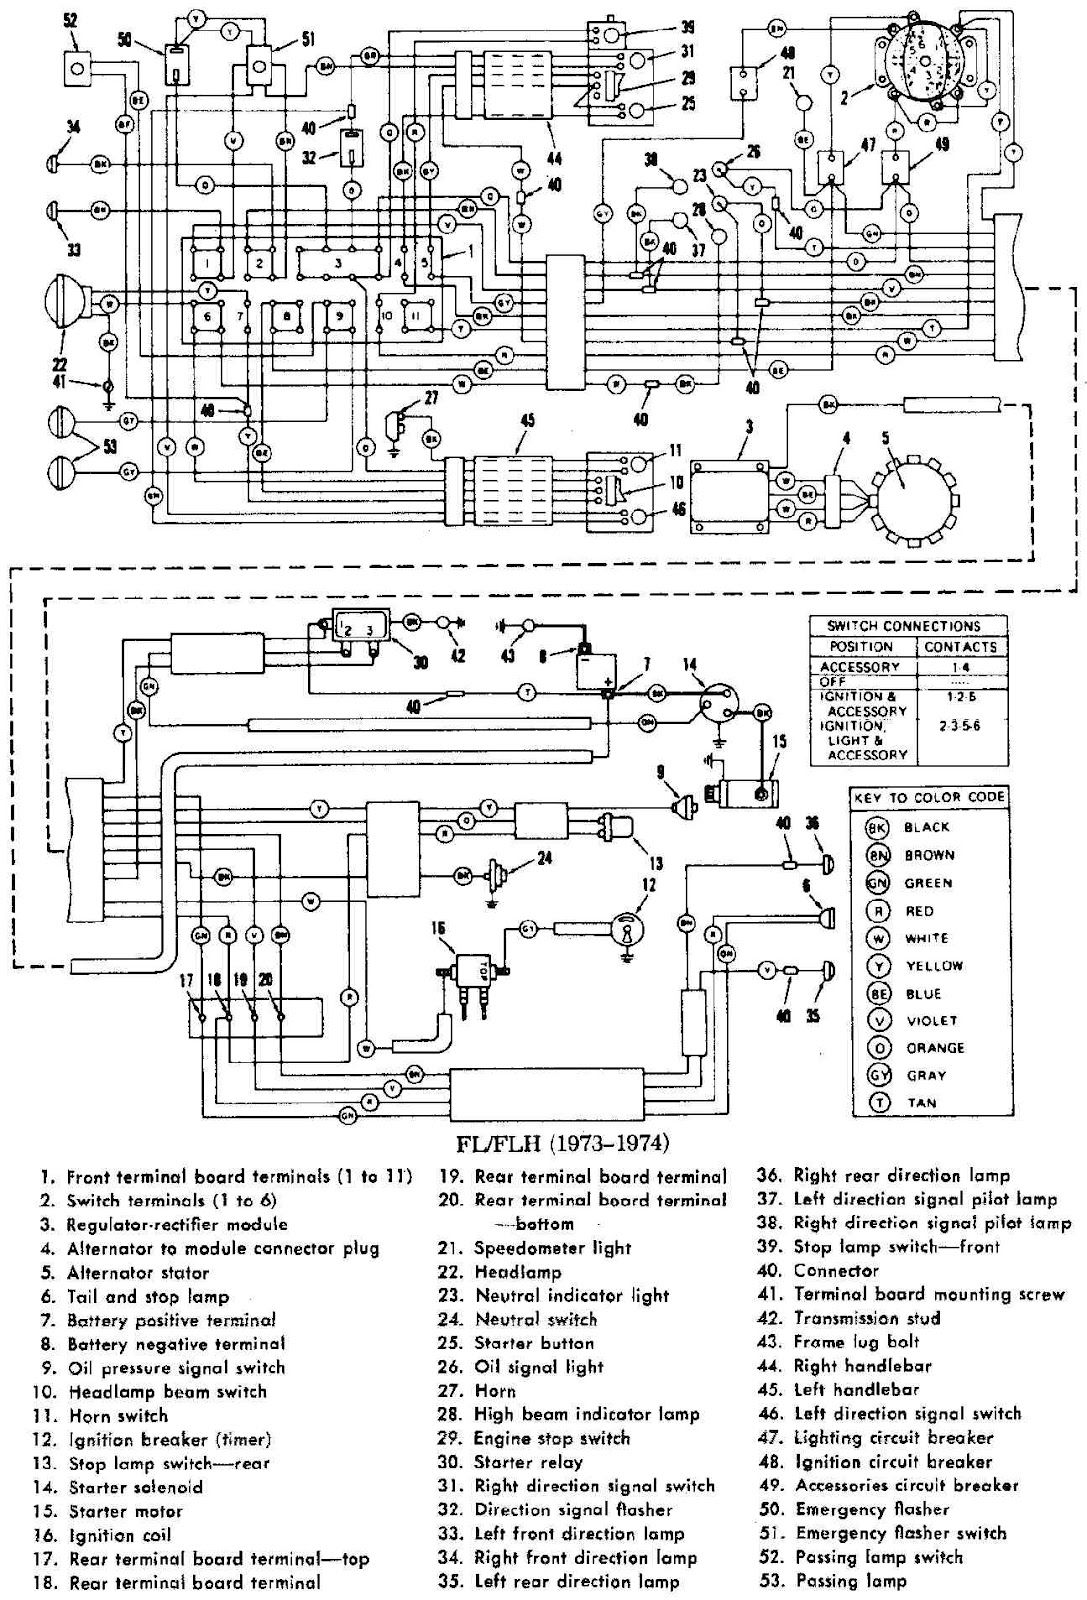 1973 Harley-Davidson Wiring Diagram | 1973 Harley | Electrical ... on 2000 harley wiring diagram, husaberg wiring diagram, nissan wiring diagram, 2001 sportster ignition system diagram, marine boat wiring diagram, harley sportster wiring diagram, harley bar and shield dxf, honda motorcycle wire diagram, 2003 harley wiring diagram, rupp snowmobile wiring diagram, harley softail wiring diagram, ktm 450 wiring diagram, tomos wiring diagram, cf moto wiring diagram, harley wiring diagram for dummies, harley touring wiring diagram, harley wiring diagrams online, ktm exc wiring diagram, harley speedometer wiring, simple harley wiring diagram,